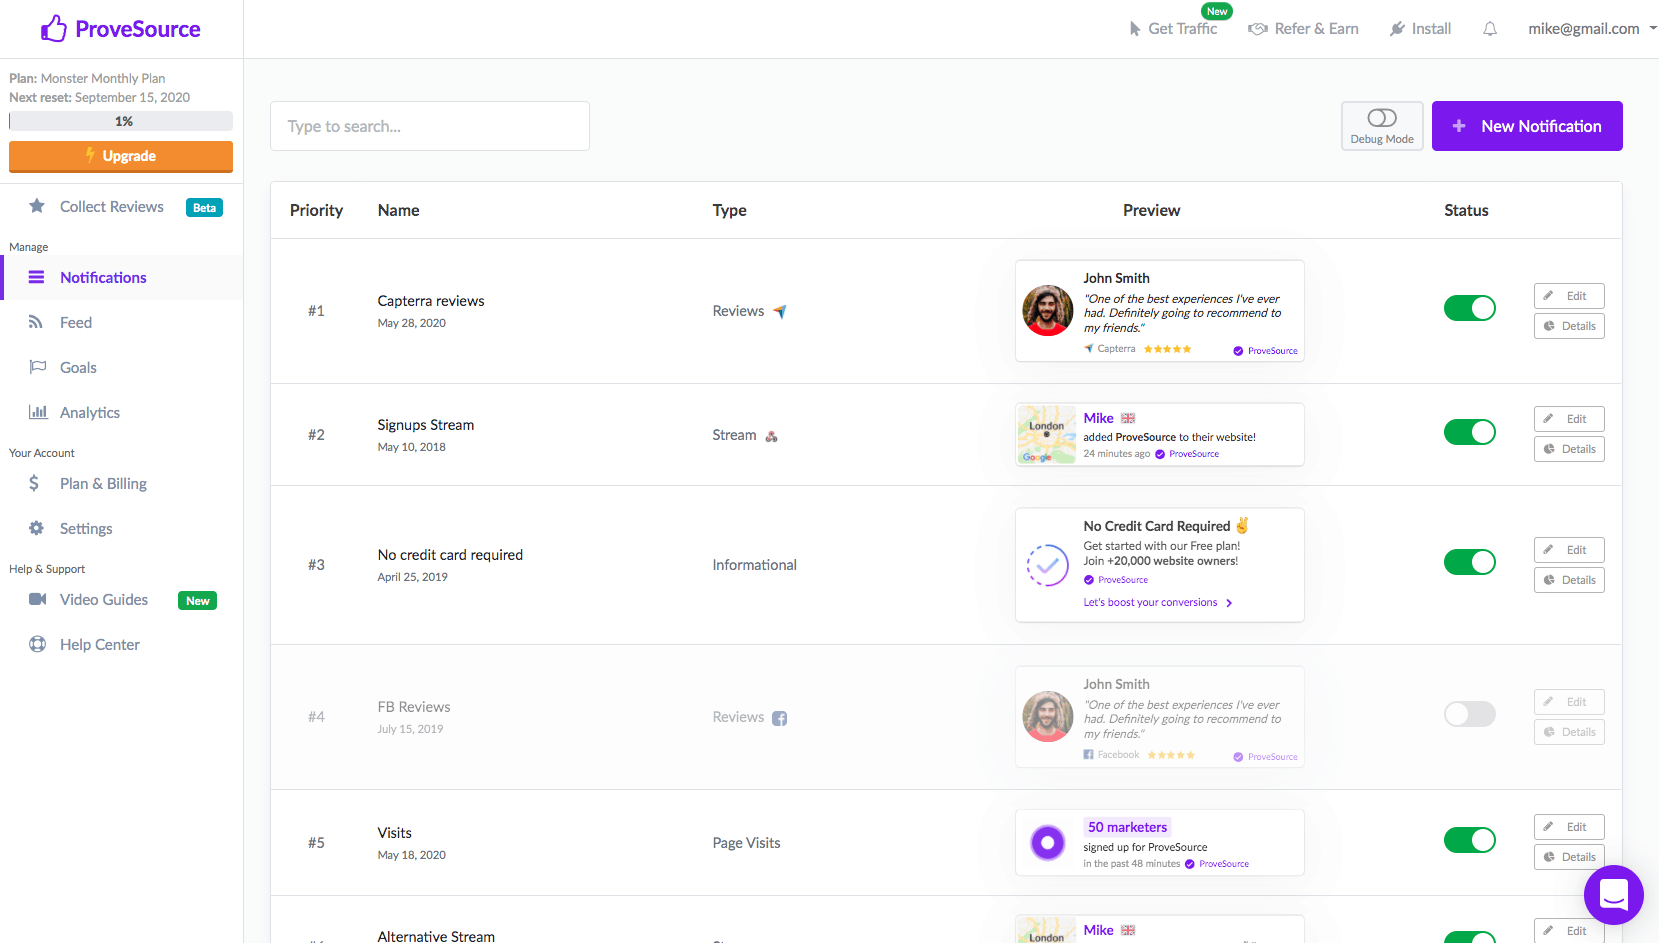 Clean, Beautiful and Intuitive Dashboard